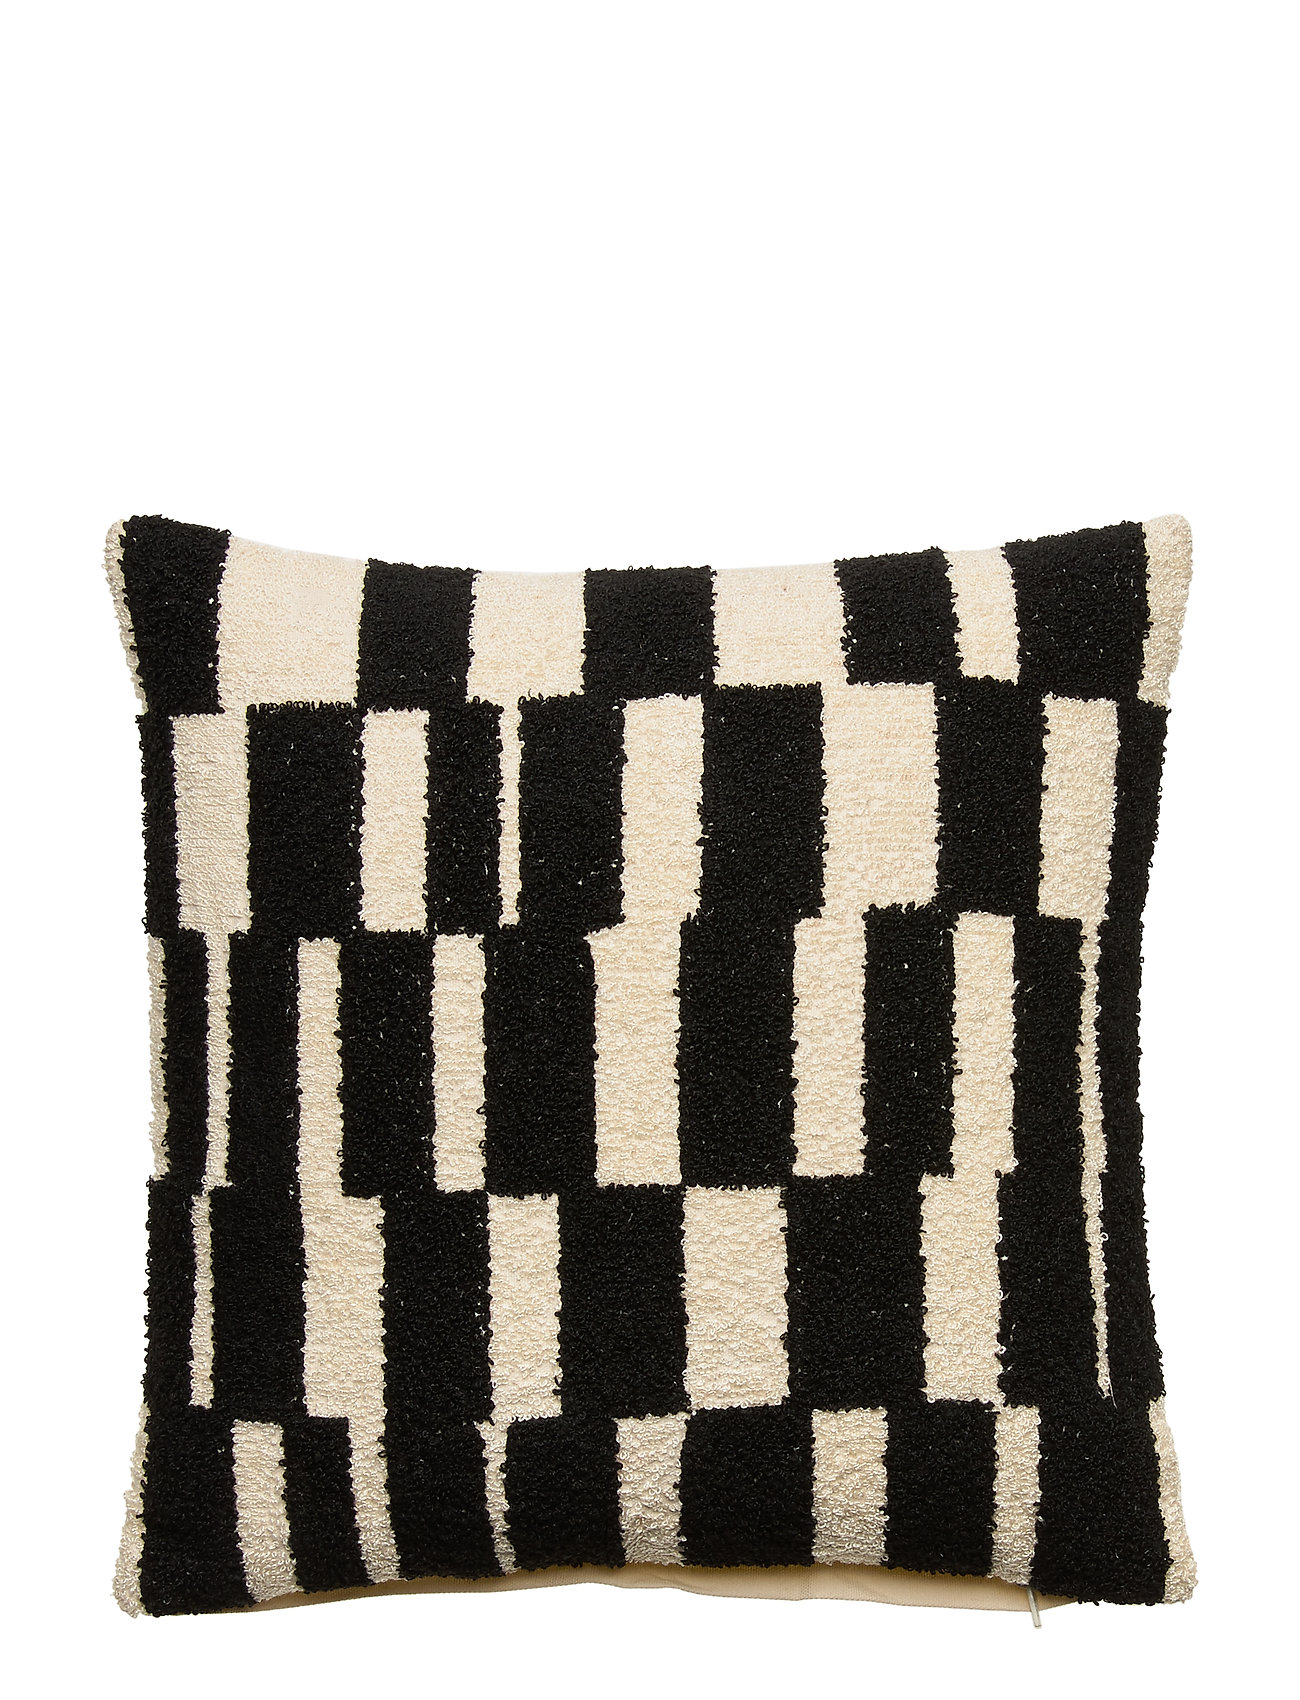 DAY Home Day Check Mate Cushion Cover - NAT. WHITE/BLACK